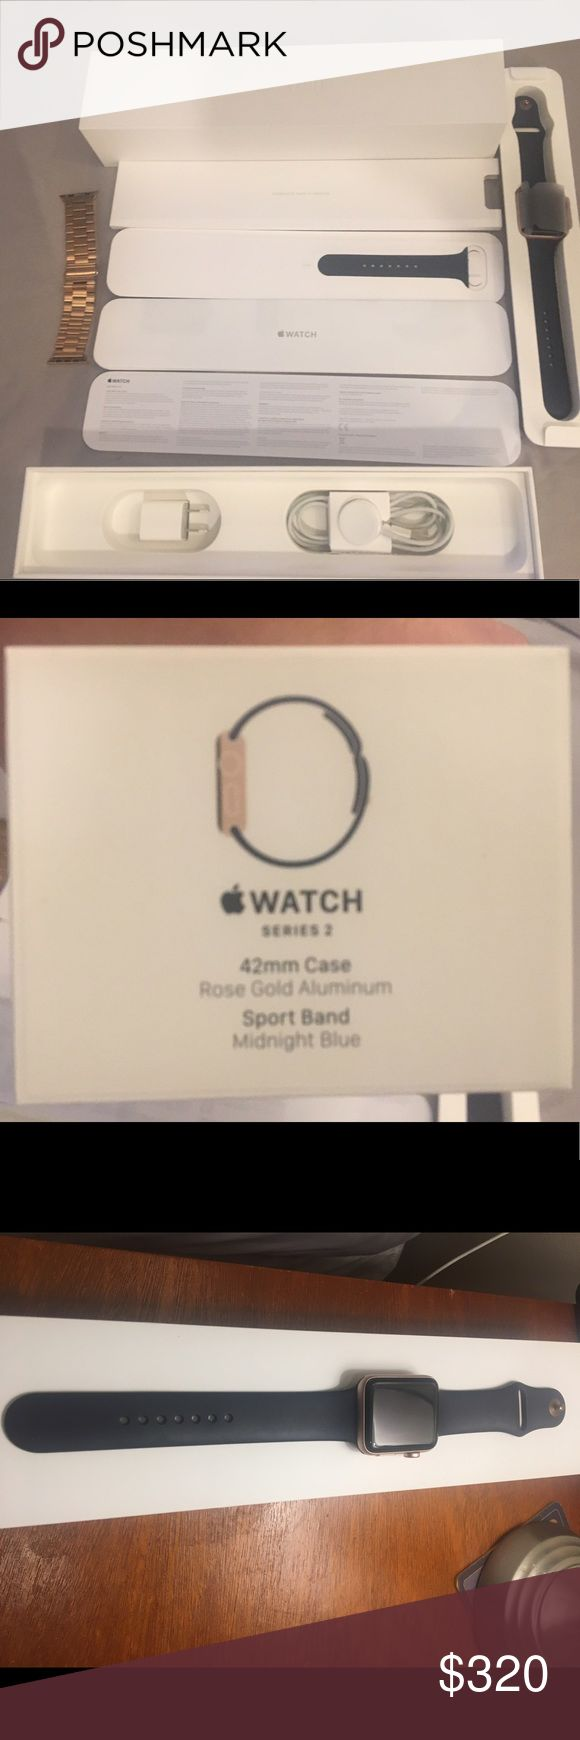 Apple Watch Series 2 42mm Rose Gold w/warranty I bought in December & I am no longer wearing it because of my carpal tunnel. Watch is in excellent condition except for the small tiny mark as showing on the last picture(top left side, not noticeable), This does not affect the watch's performance. Genuine Apple Watch S2, I purchased this watch and warranty for $479. Apple Accessories Watches